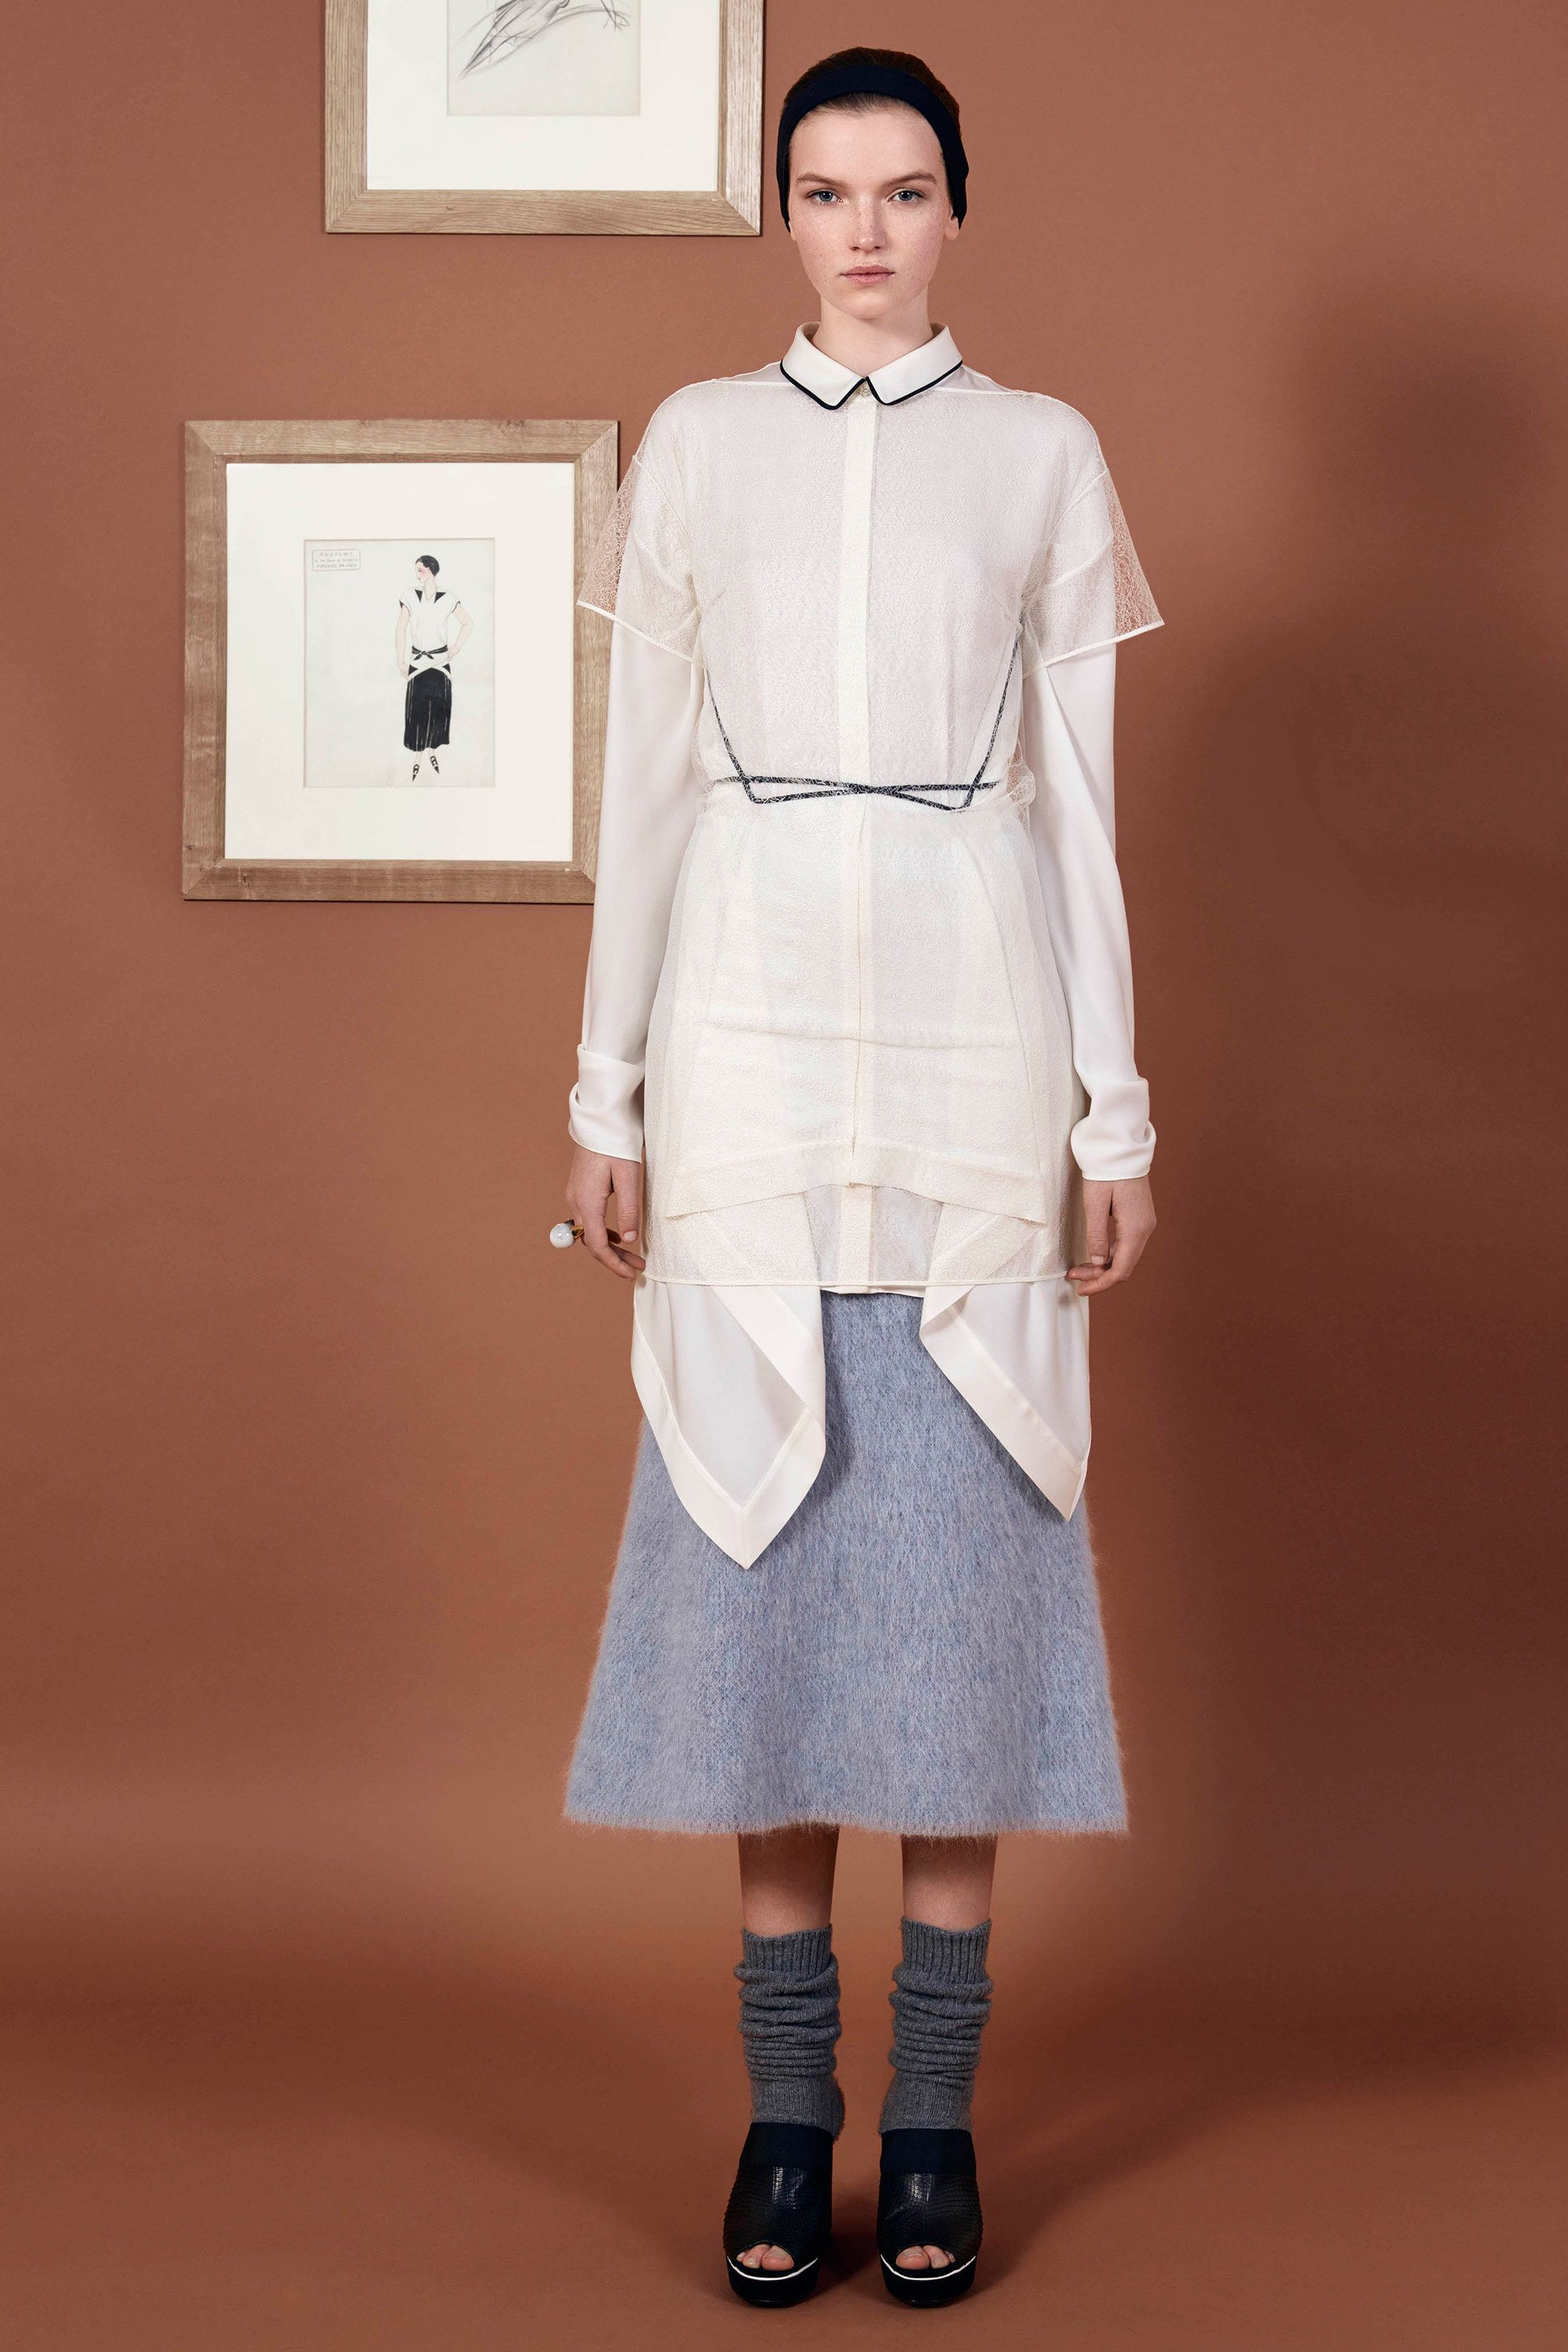 To acquire Pre-fall vionnet collection picture trends